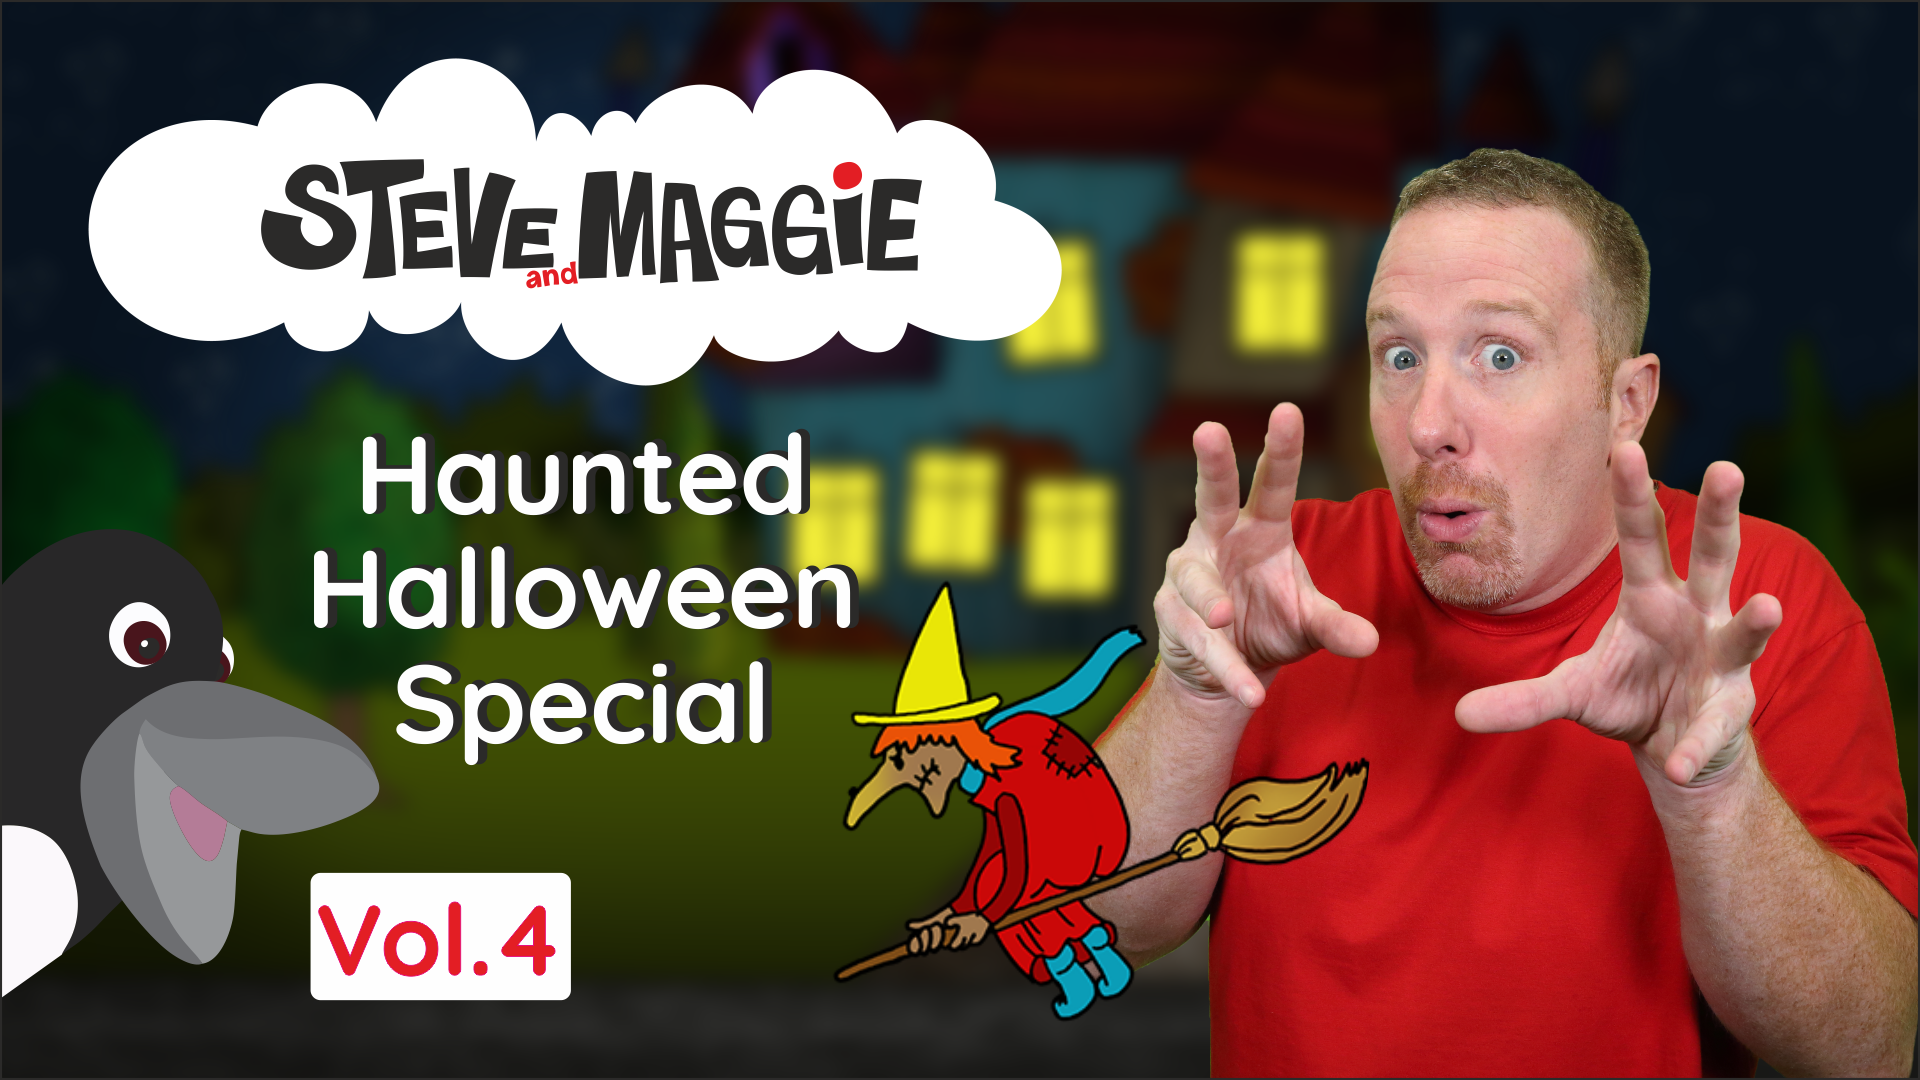 Steve and Maggie - Haunted Halloween Special (Vol. 4)